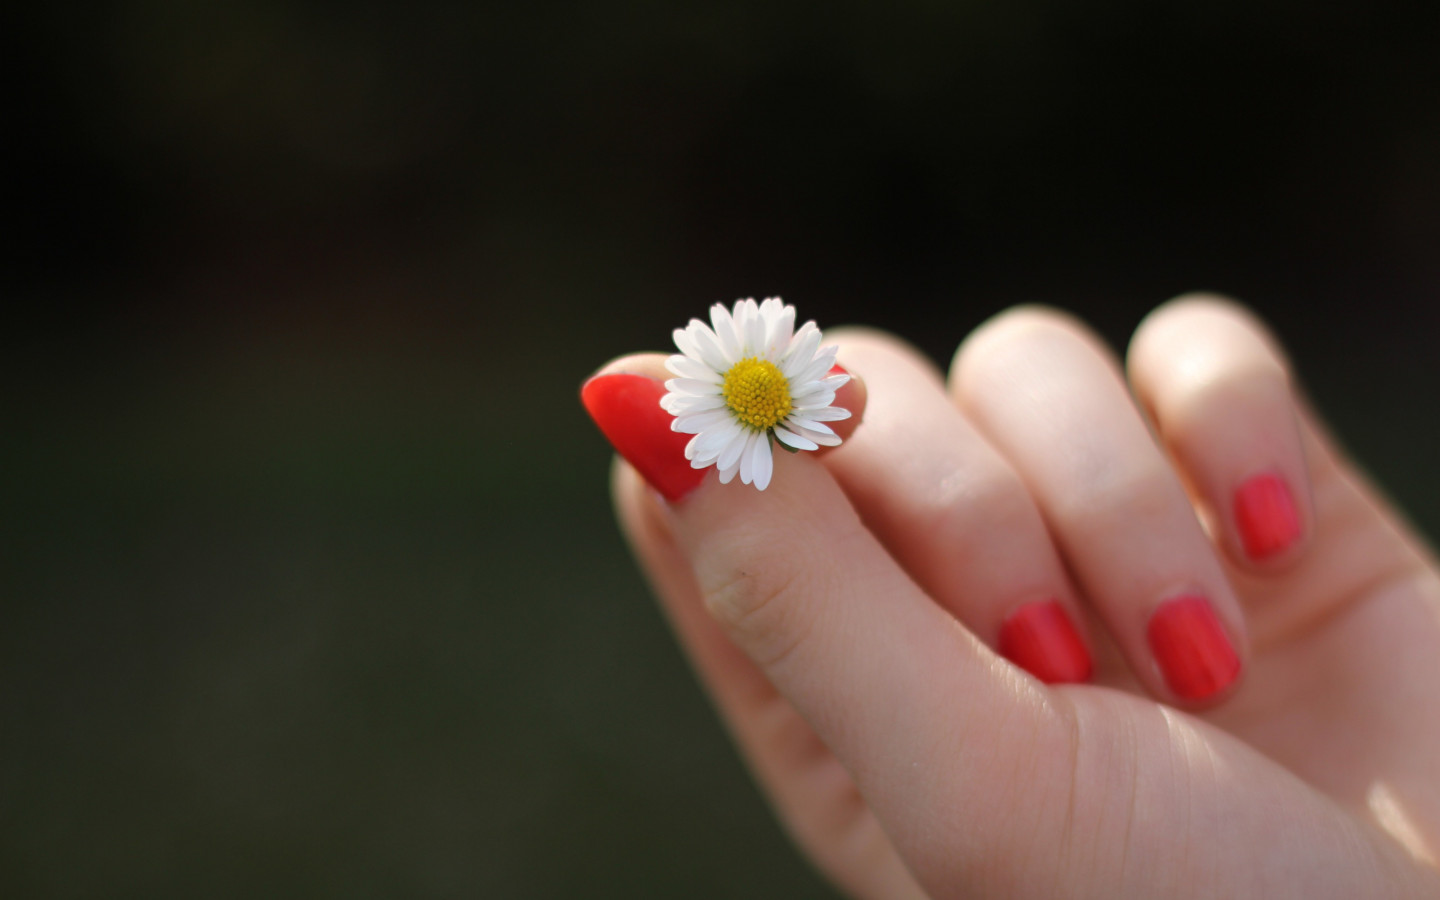 Girl with red nails and a daisy flower wallpaper 1440x900